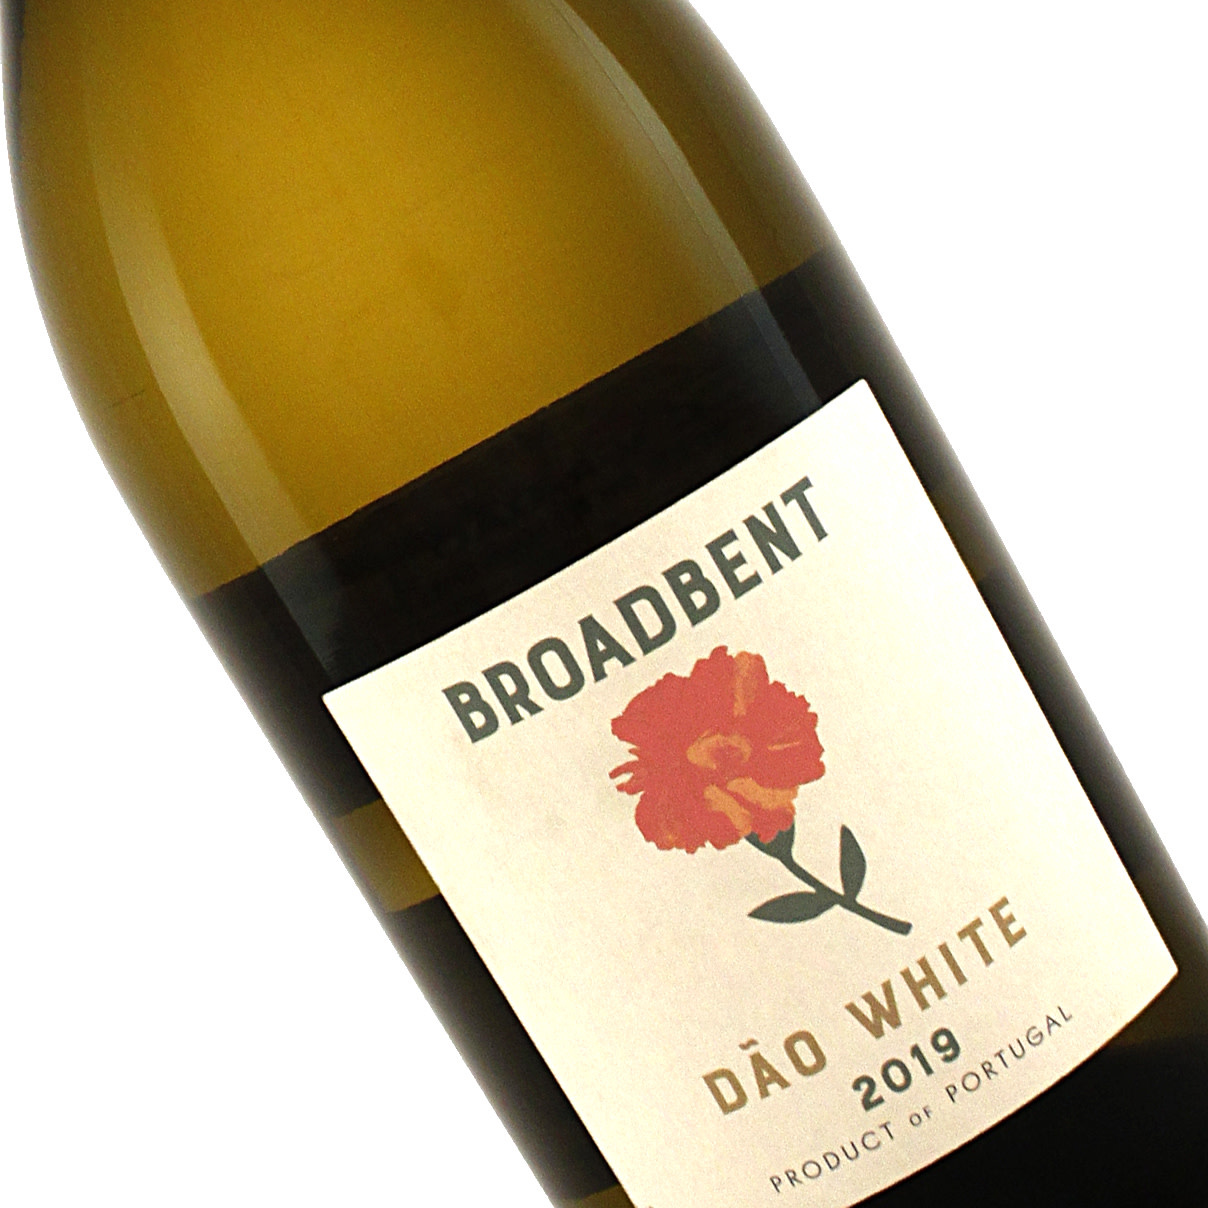 Broadbent 2019 Dao White, Portugal